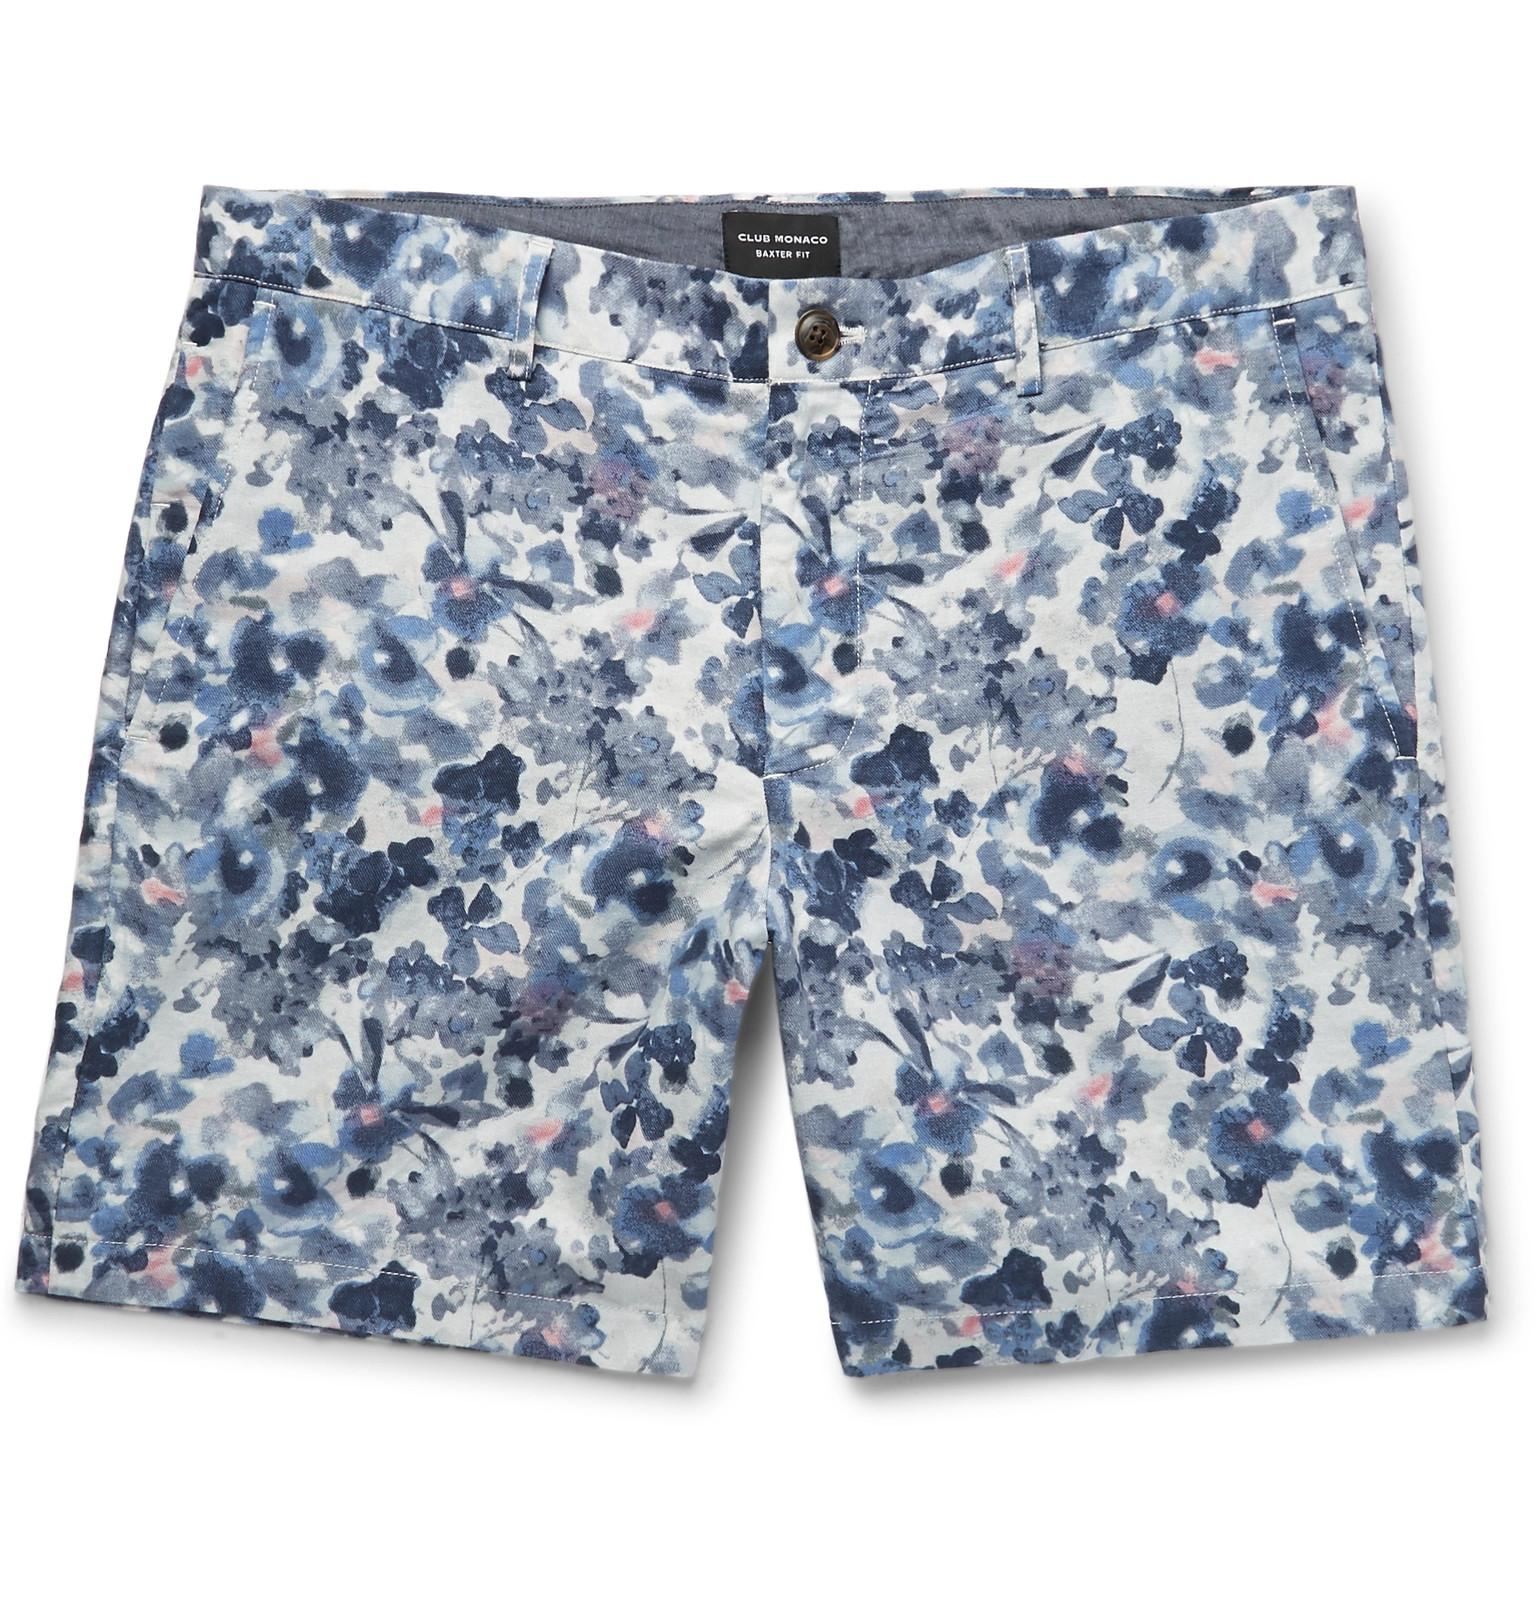 Baxter Slim-fit Printed Linen And Cotton-blend Twill Shorts Club Monaco ohlVkH